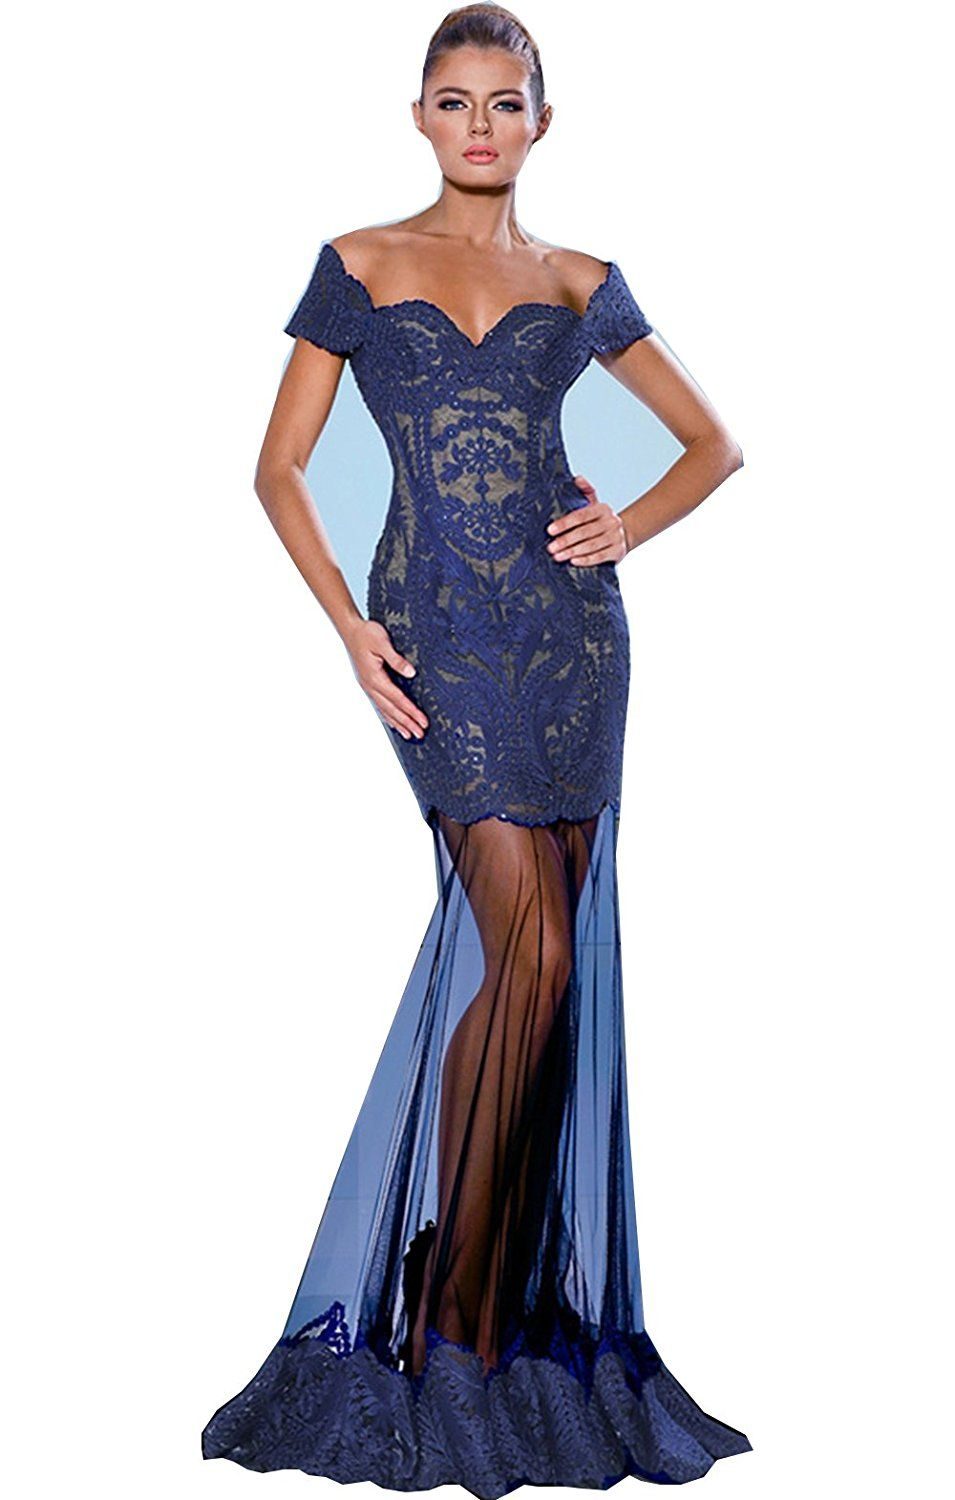 Fenghuavip offshoulder lace floor length sheer tulle blue evening